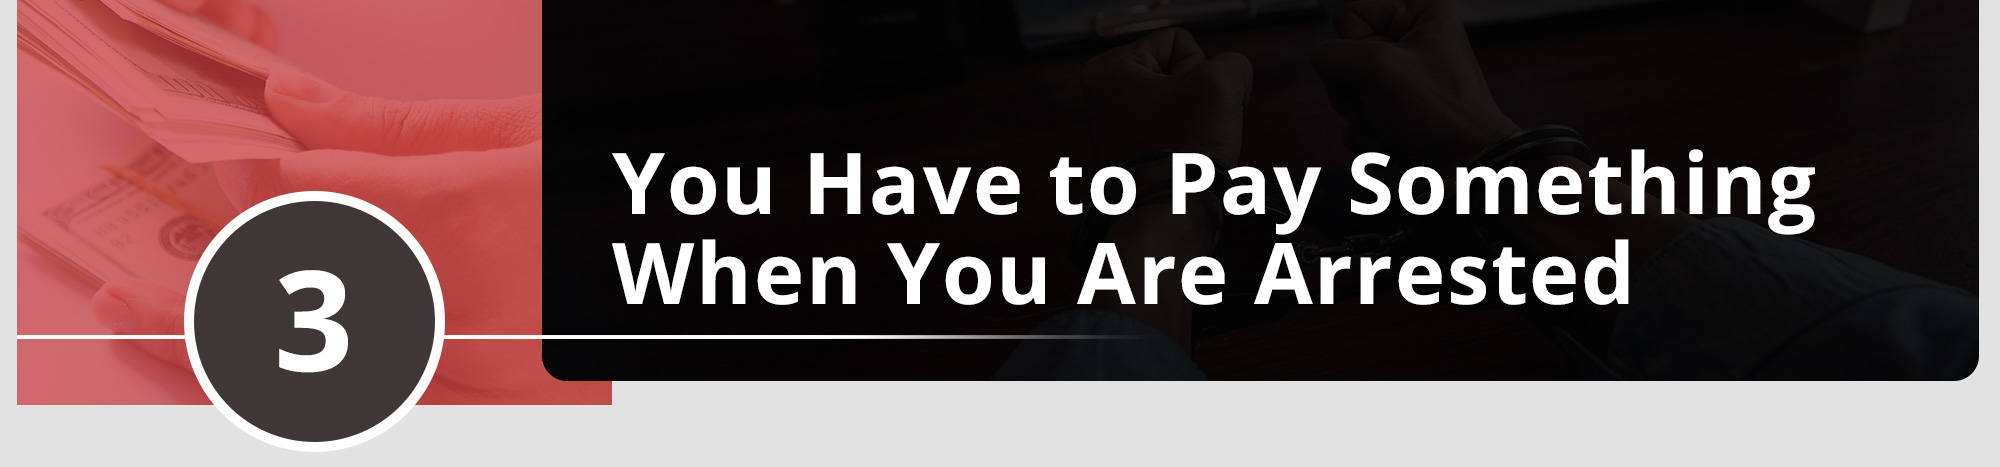 You Have to Pay Something When You Are Arrested